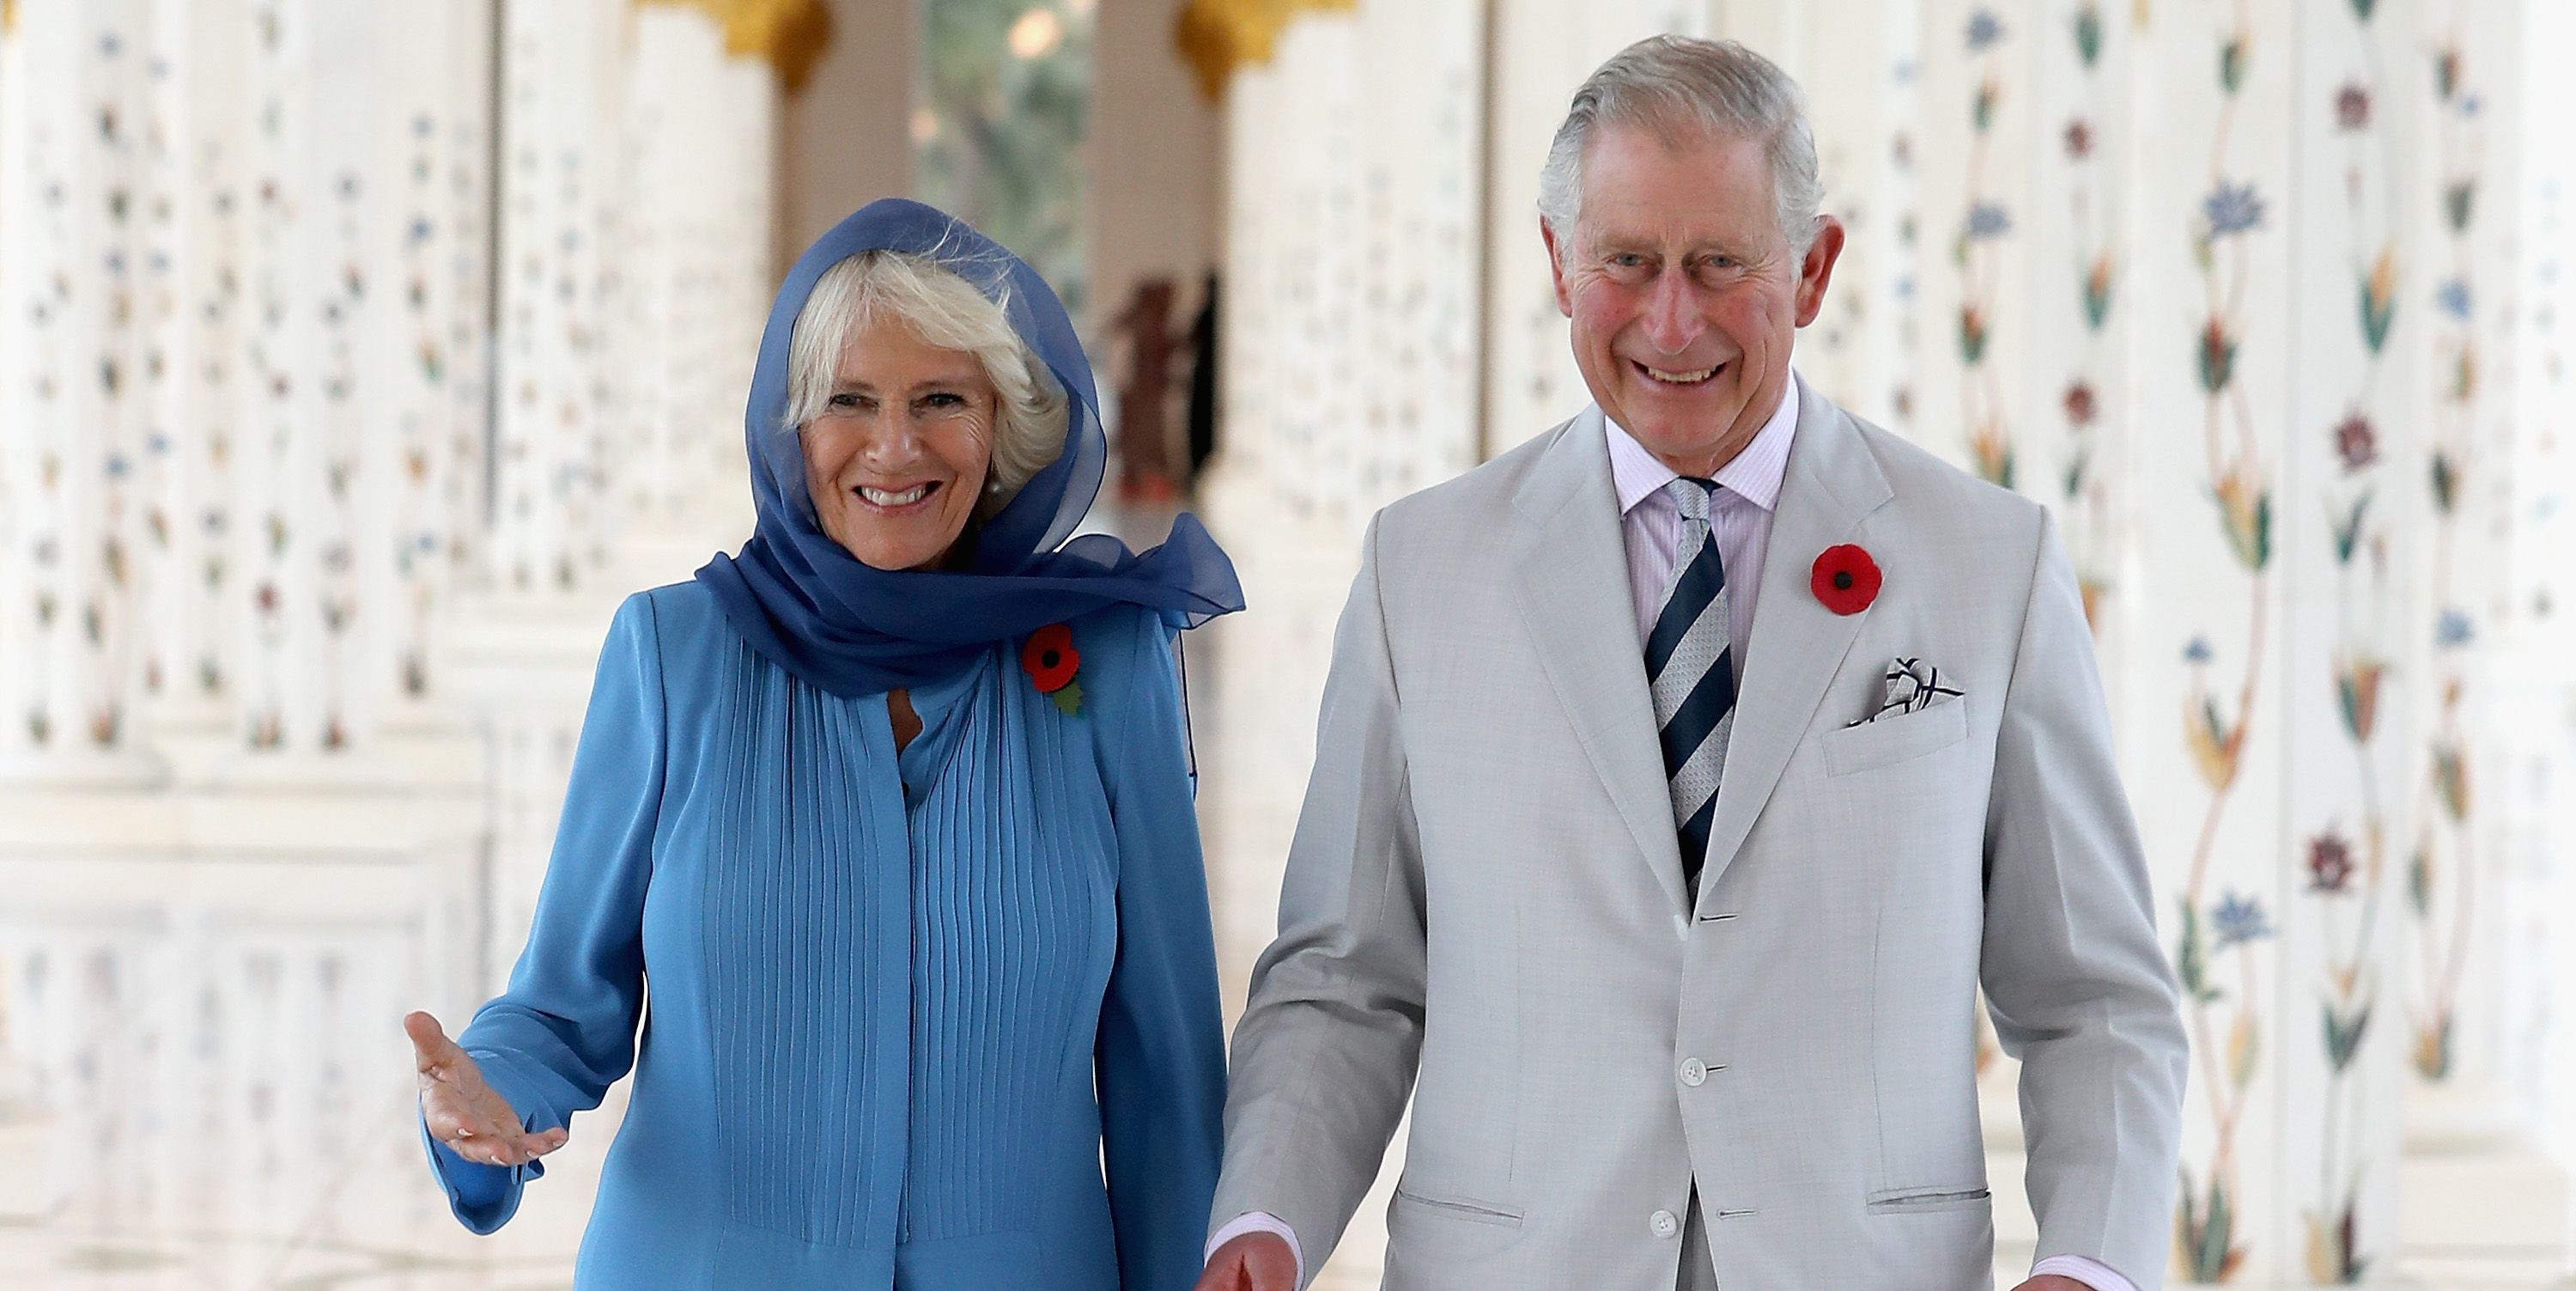 The Prince Of Wales And The Duchess Of Cornwall Tour United Arab Emirates - Day 1